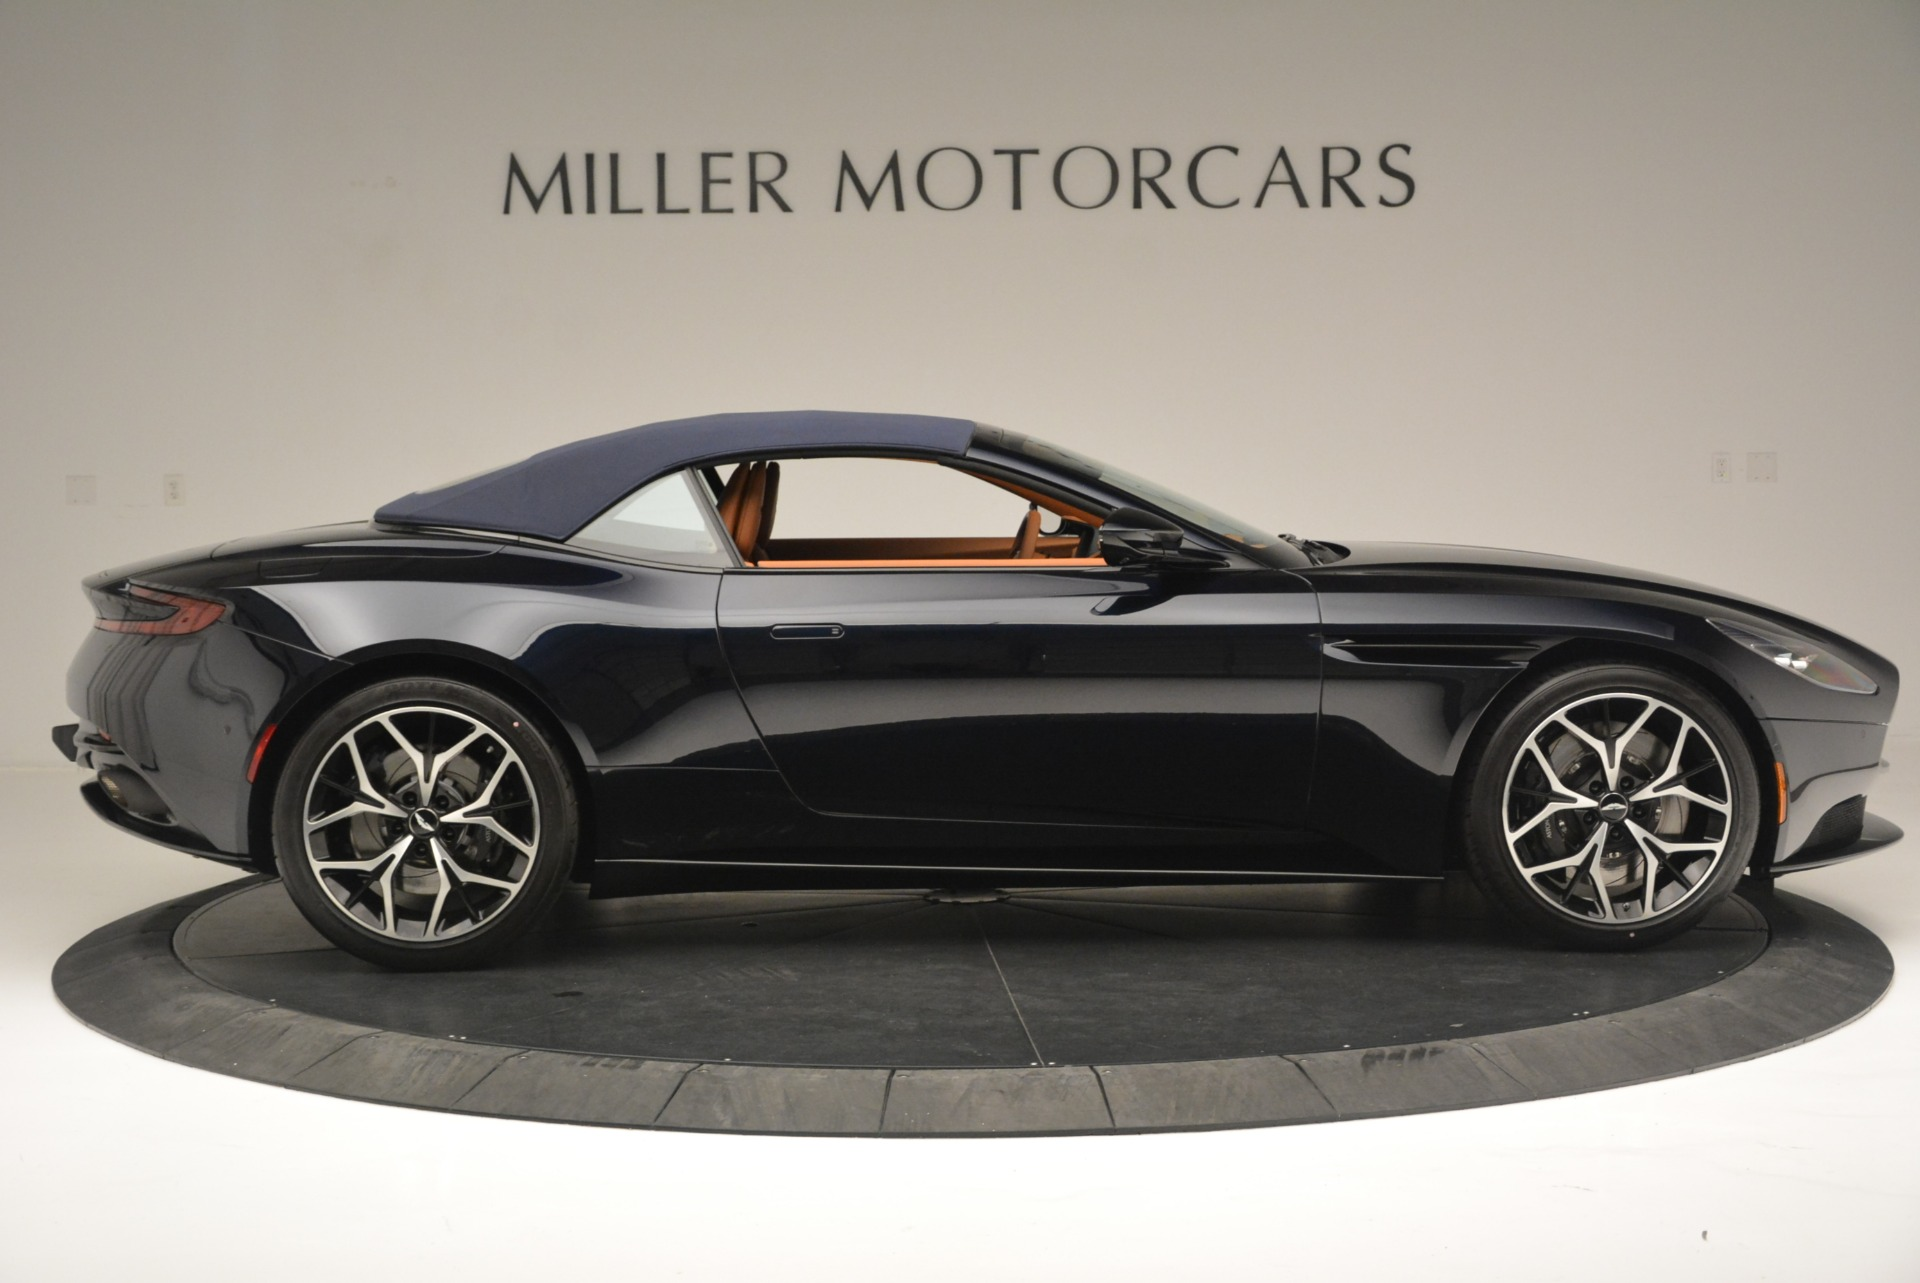 New 2019 Aston Martin DB11 Volante Volante For Sale In Westport, CT 2450_p16